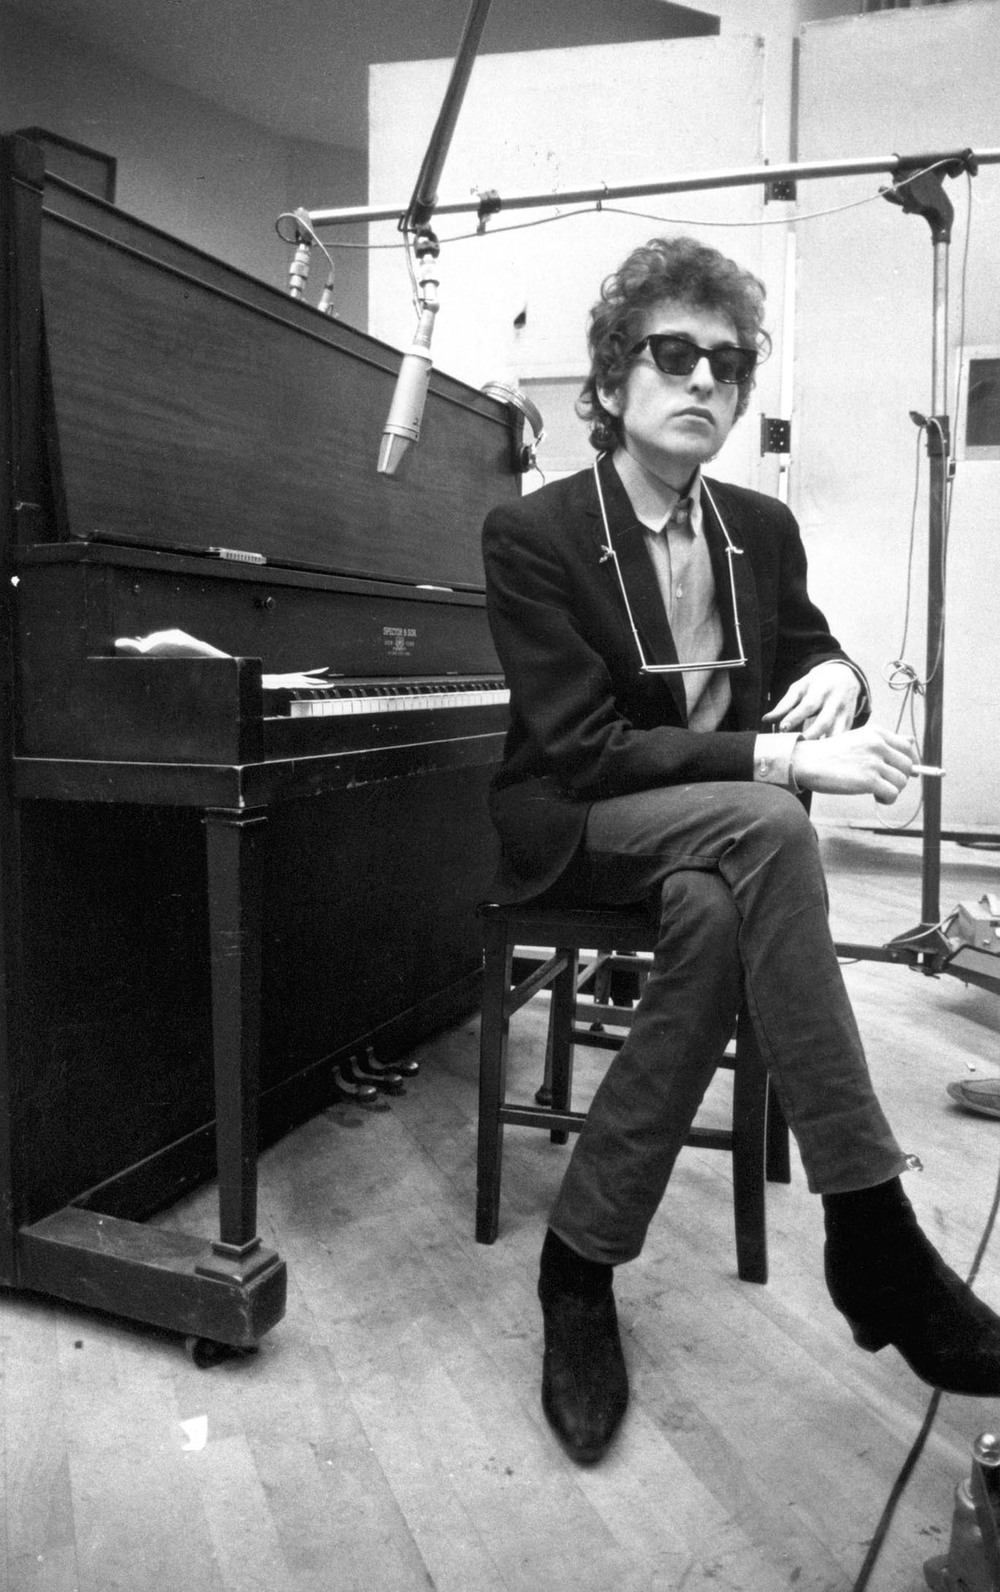 It's at this point in our program that I should admit to modeling my own personal style heavily on '64-'67 Bob Dylan. Photo by Jerry Schatzberg.